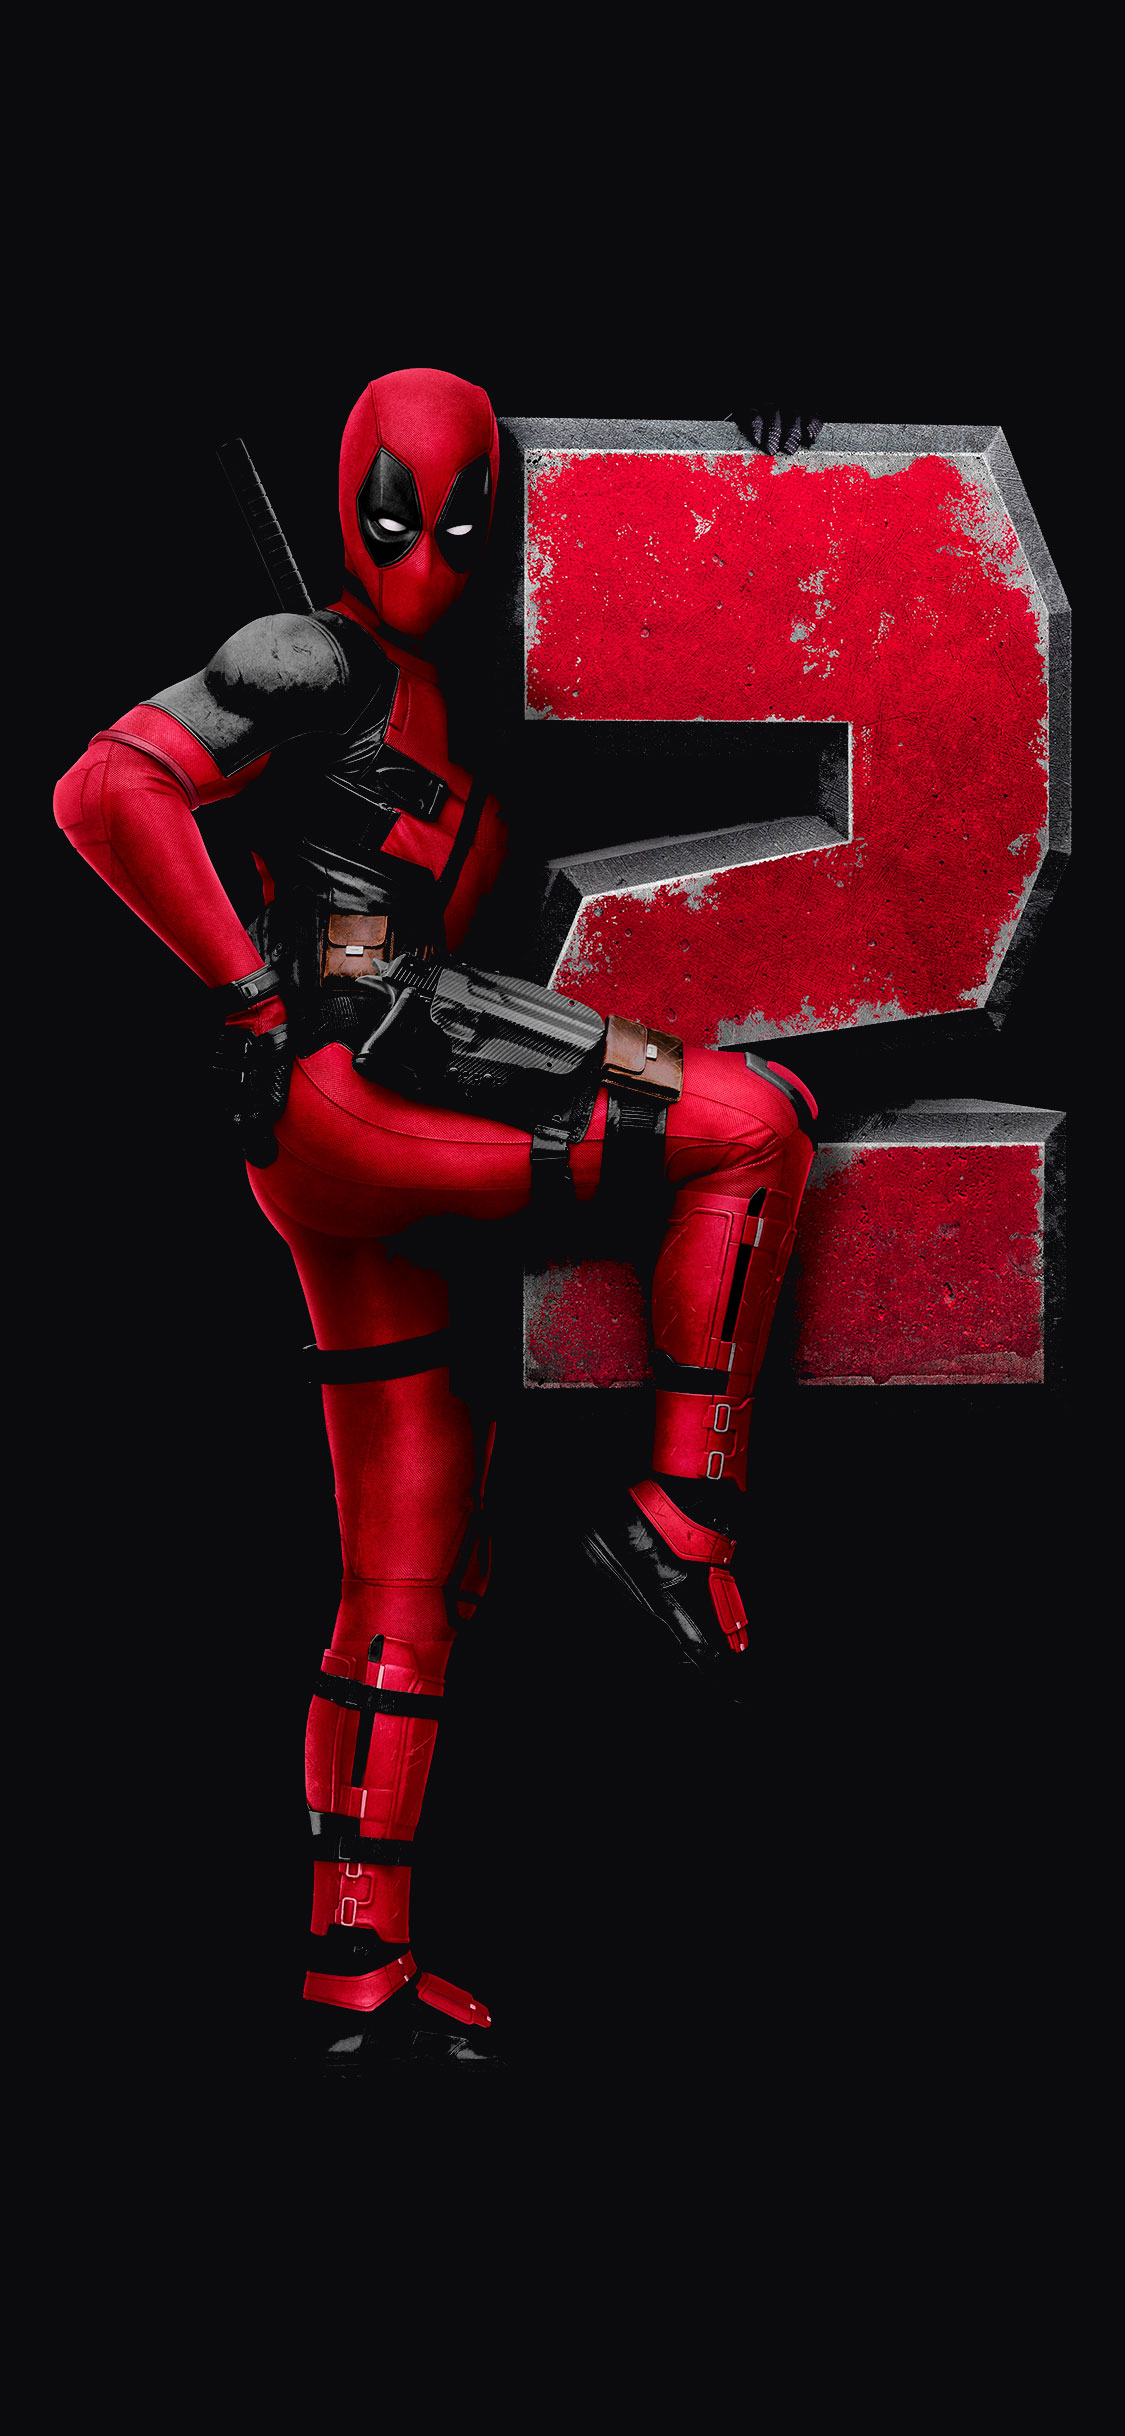 iPhone wallpaper deadpool Deadpool